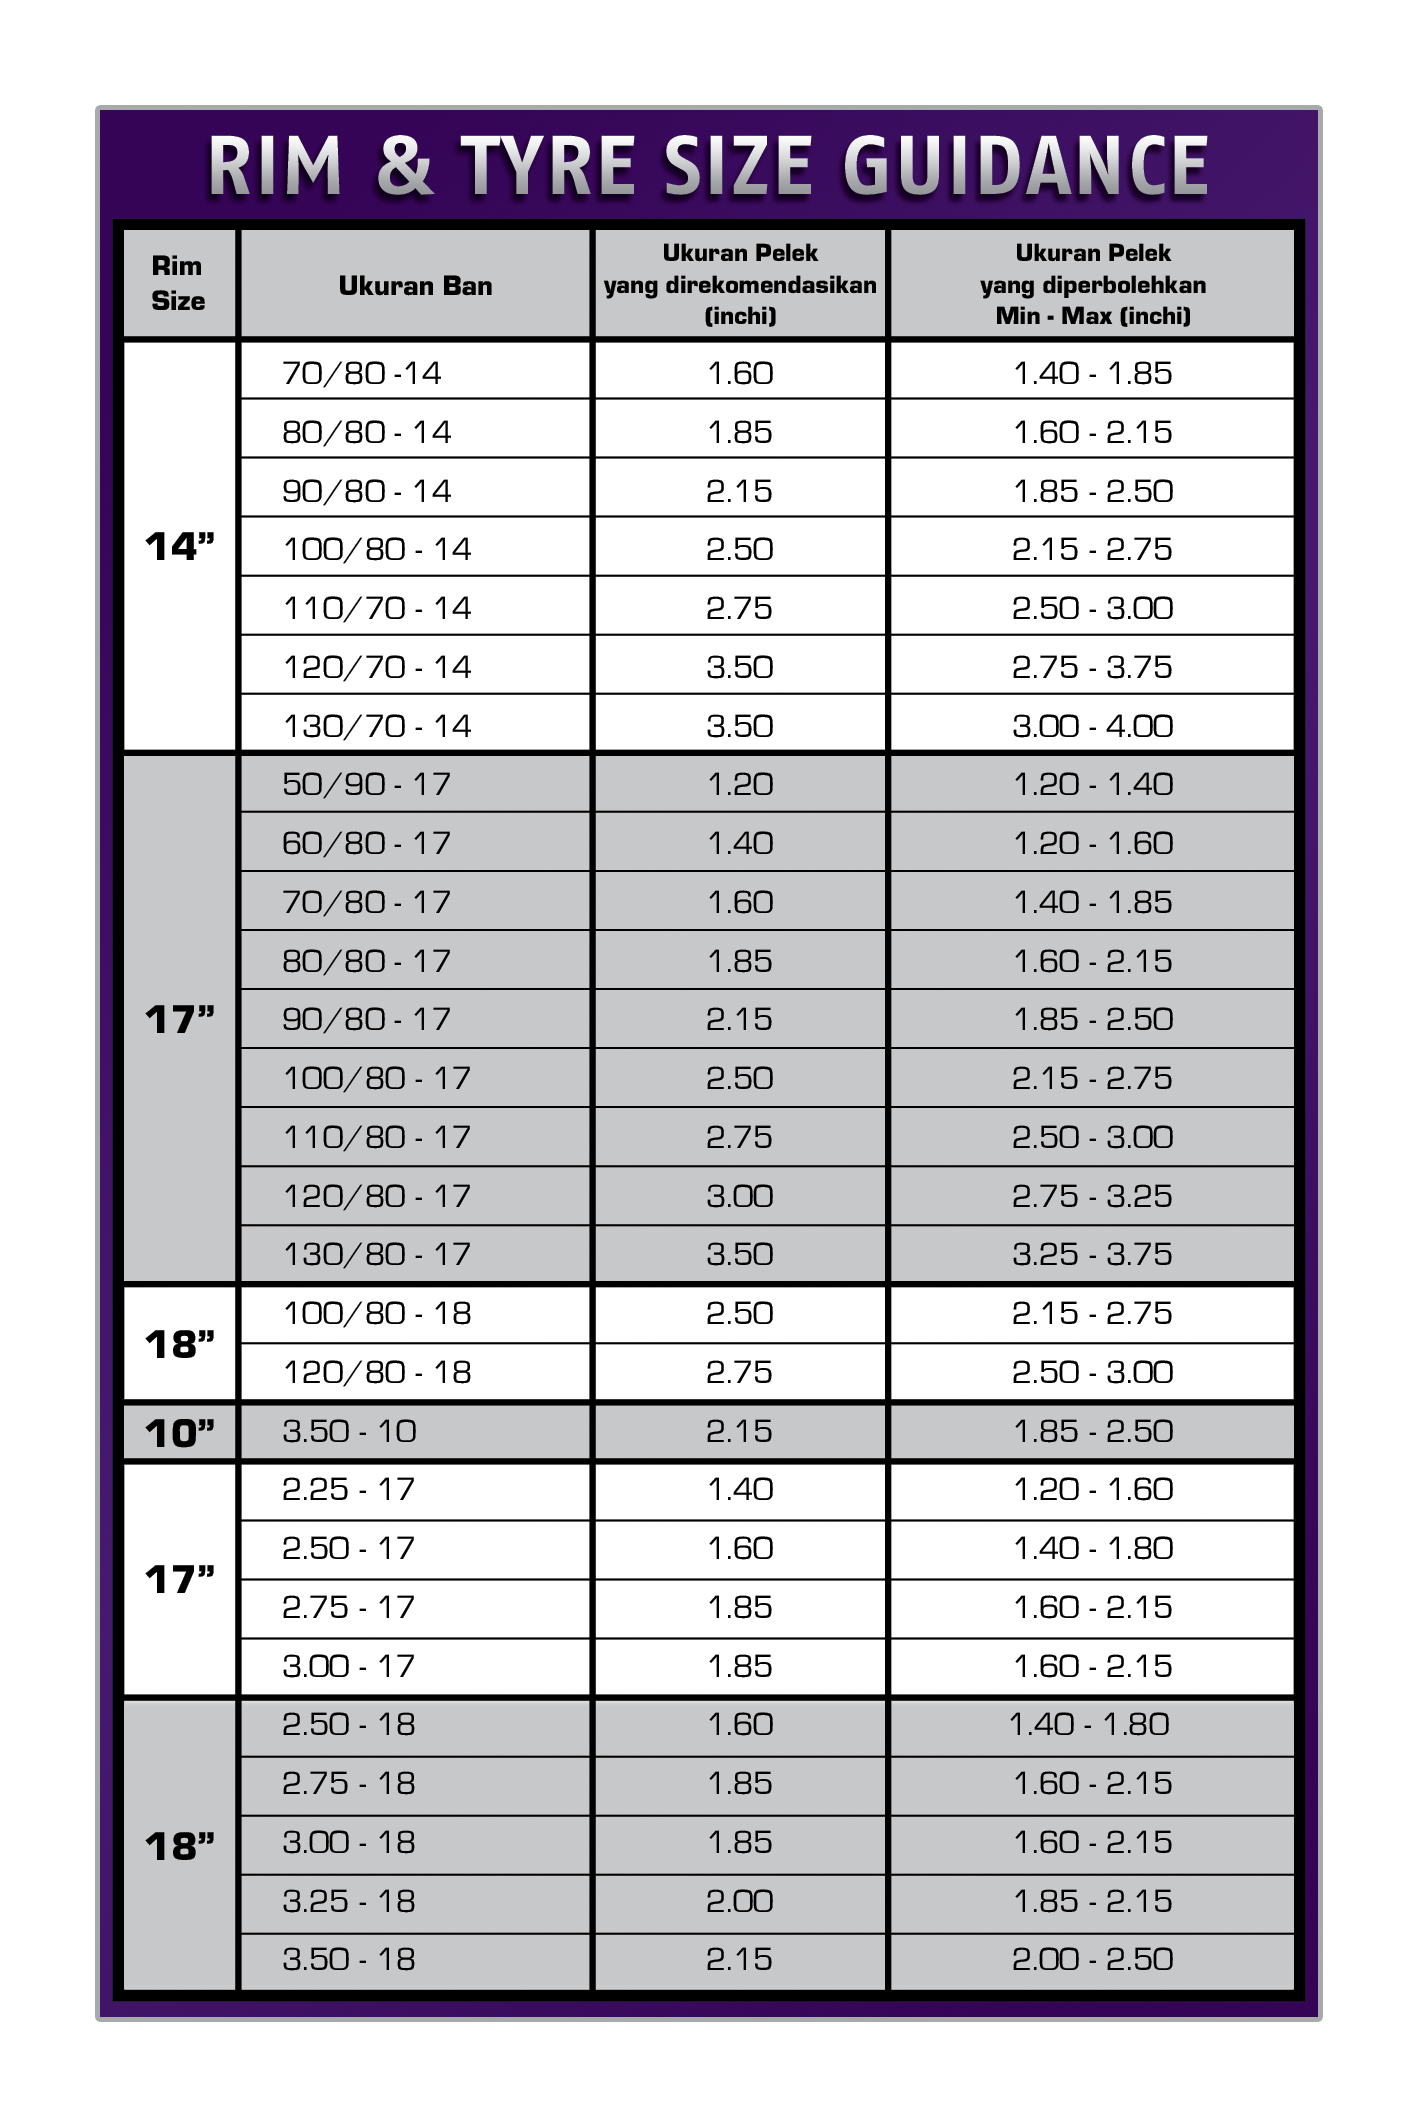 Rim & Tyre Size Guidance